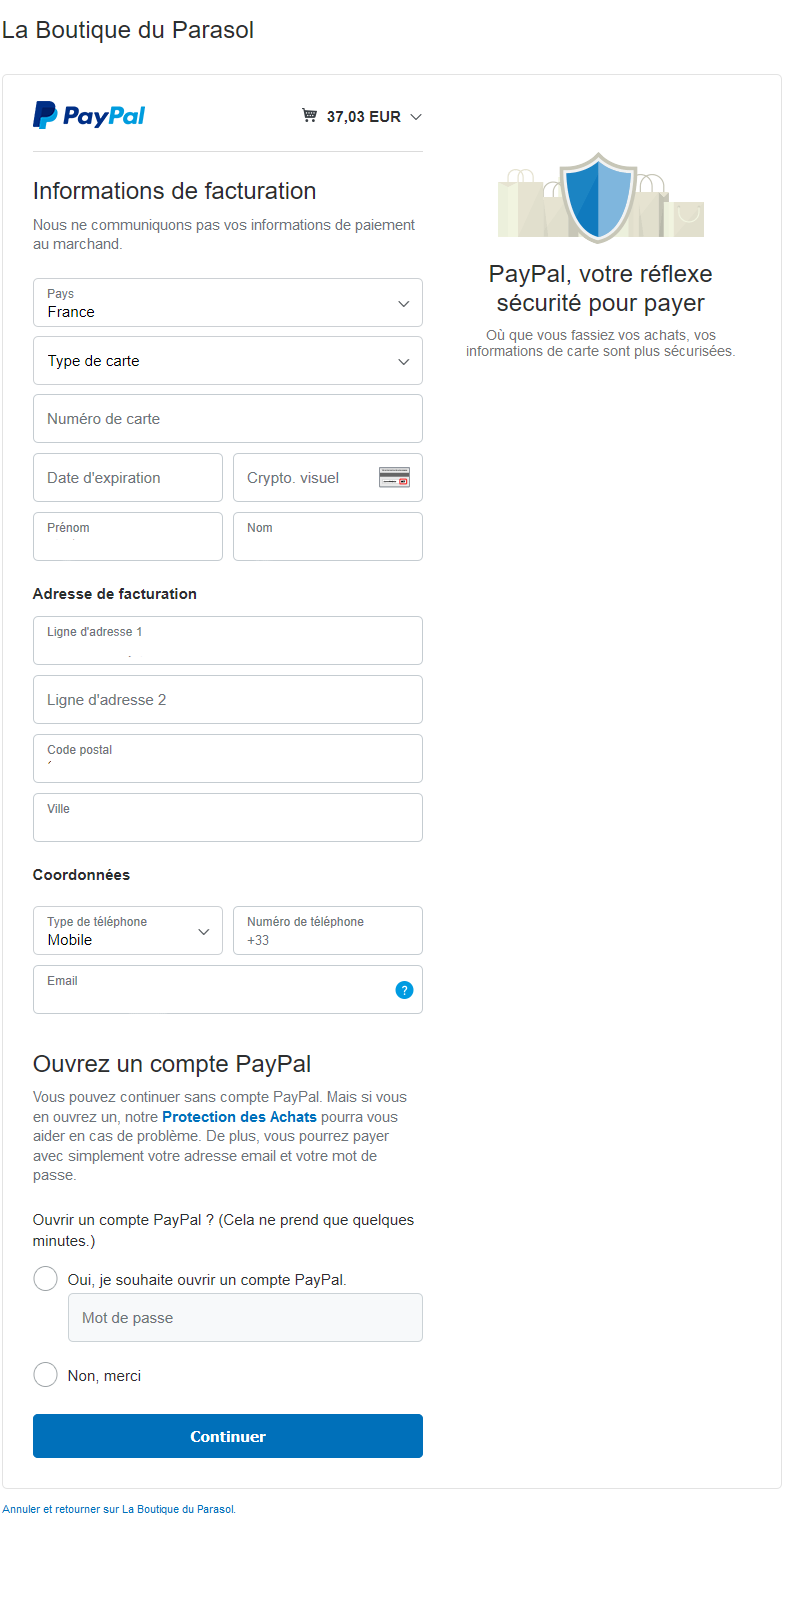 paypal page d'accueil